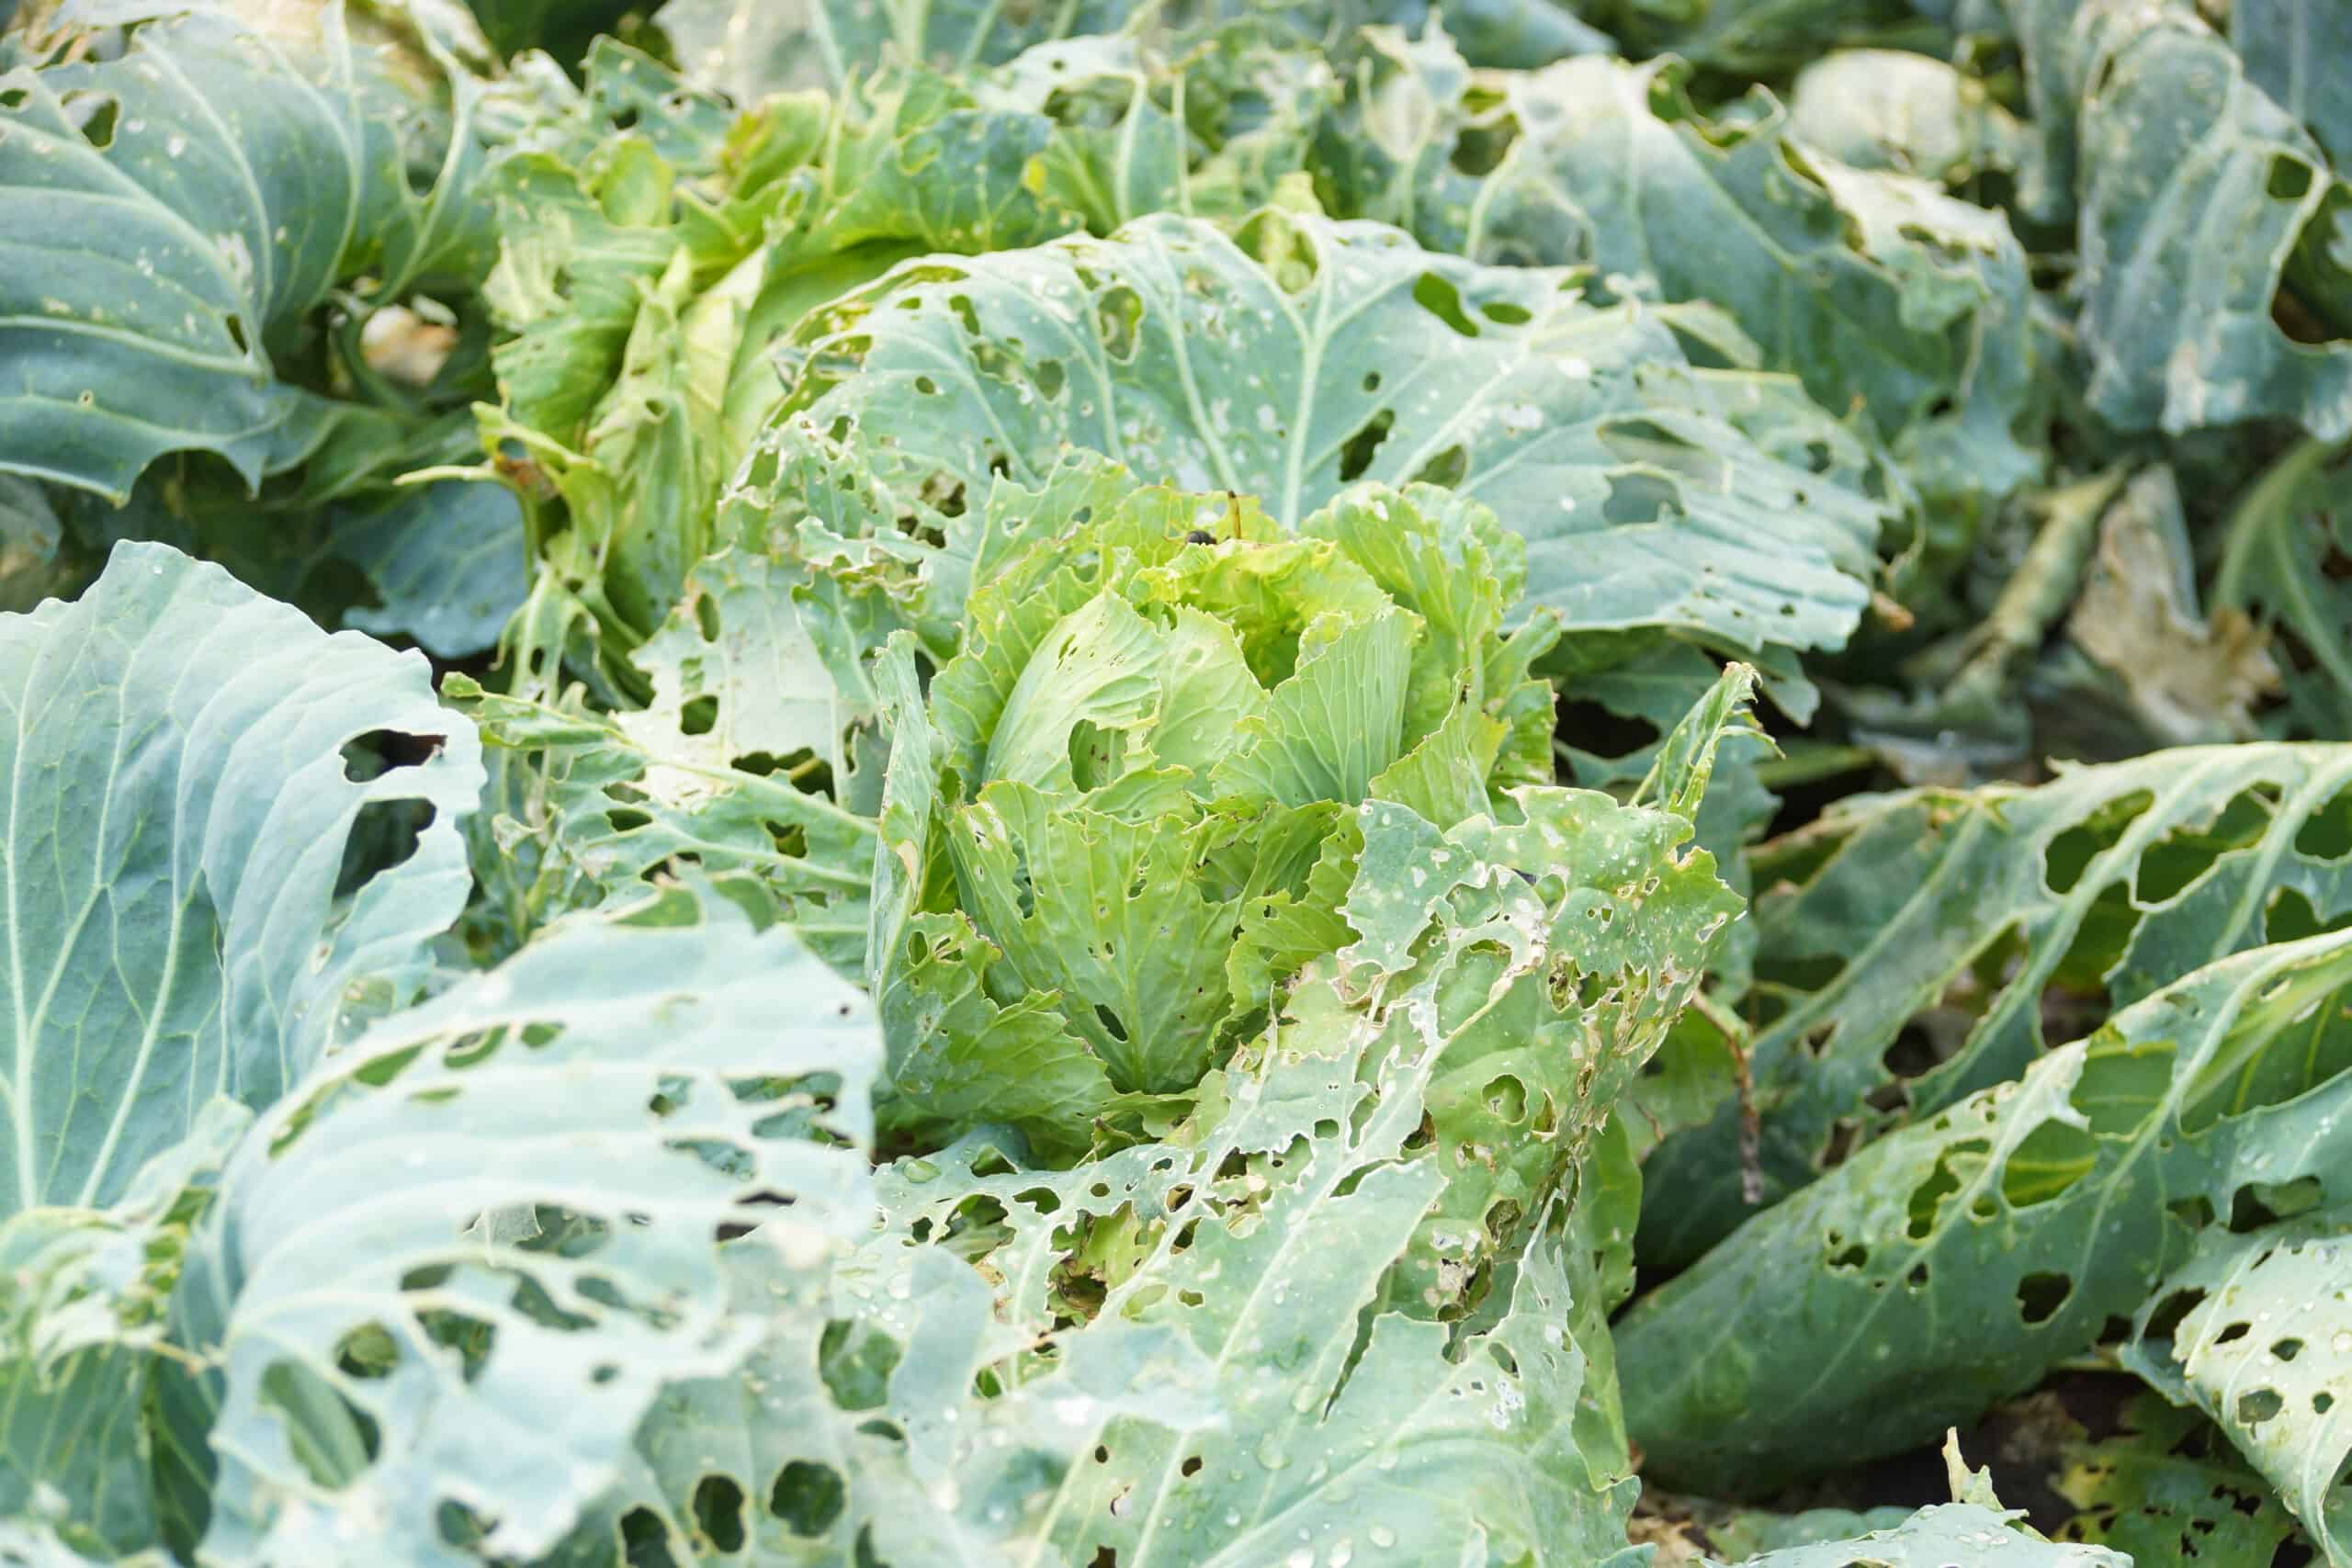 Cabbage must be protected from pest insect